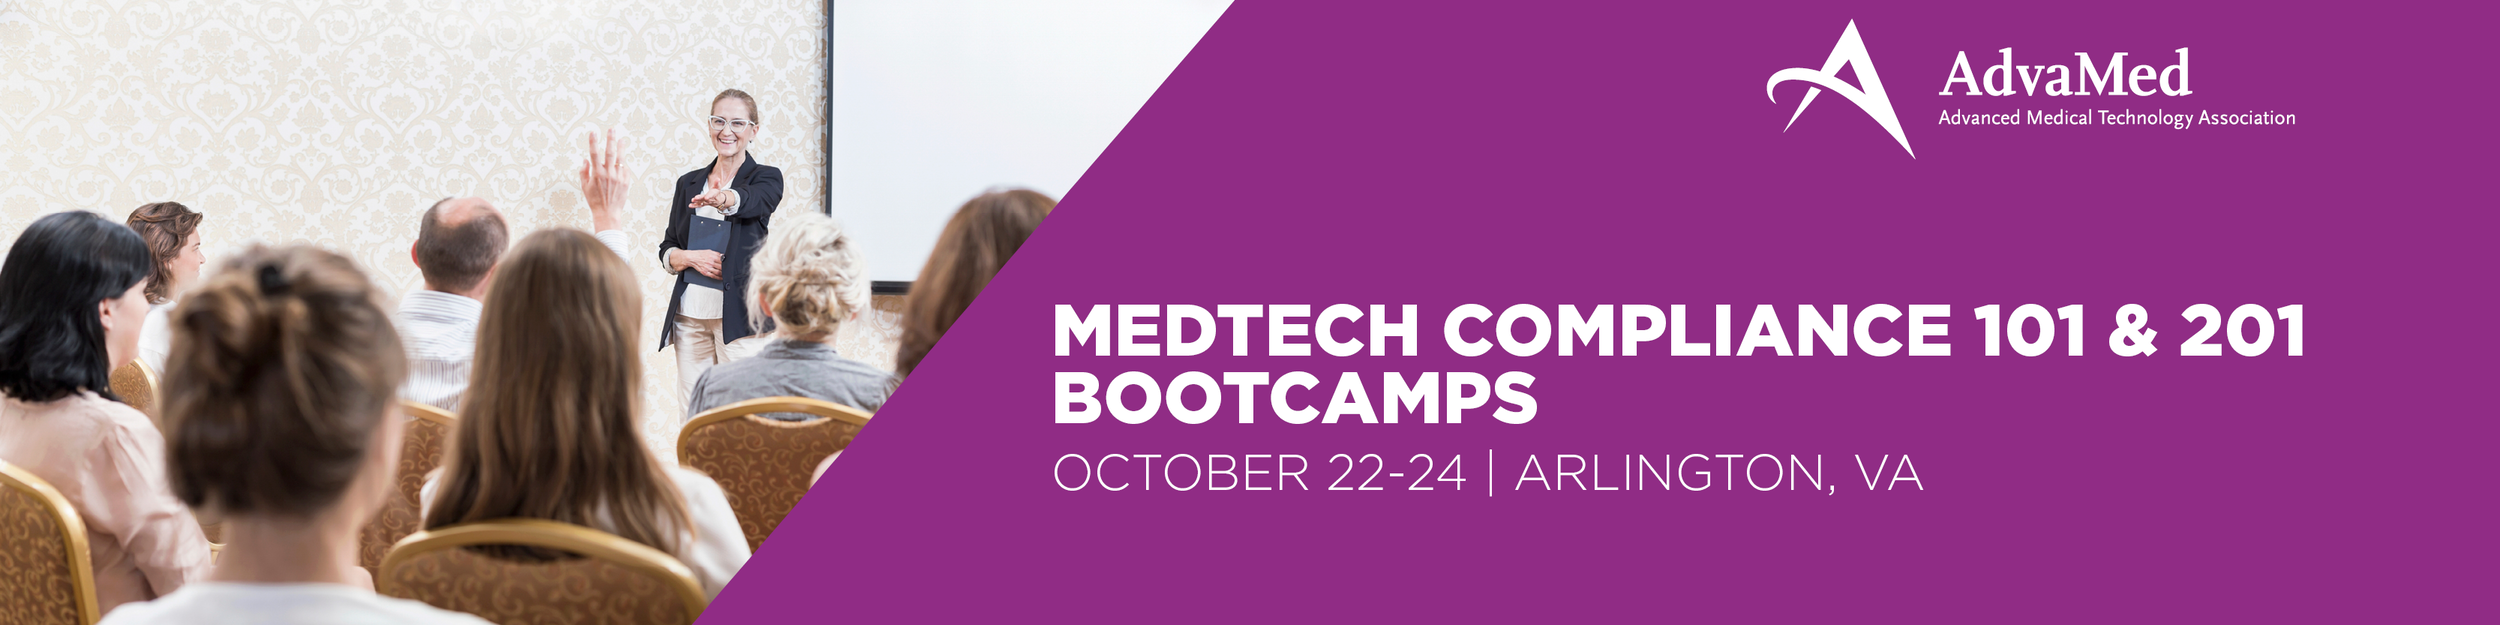 AdvaMed Compliance Bootcamps Banner 10-10-19.png